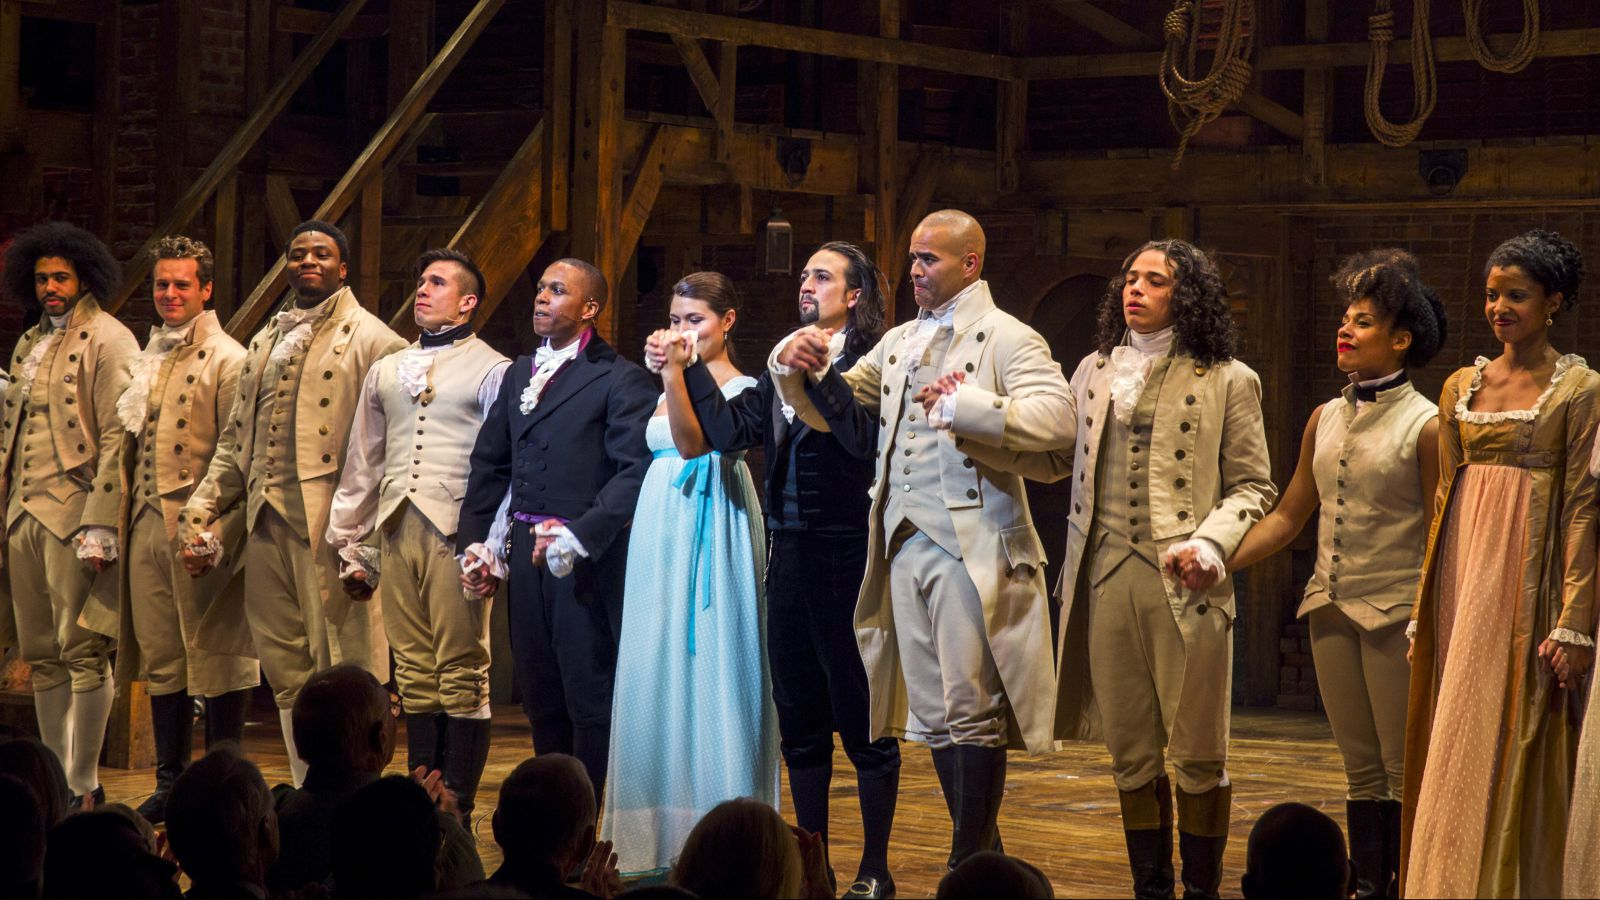 How does the hit musical Hamilton relate to contemporary Jewish institutions? Listen to this episode to find out!Image Credit: www.tvline.com